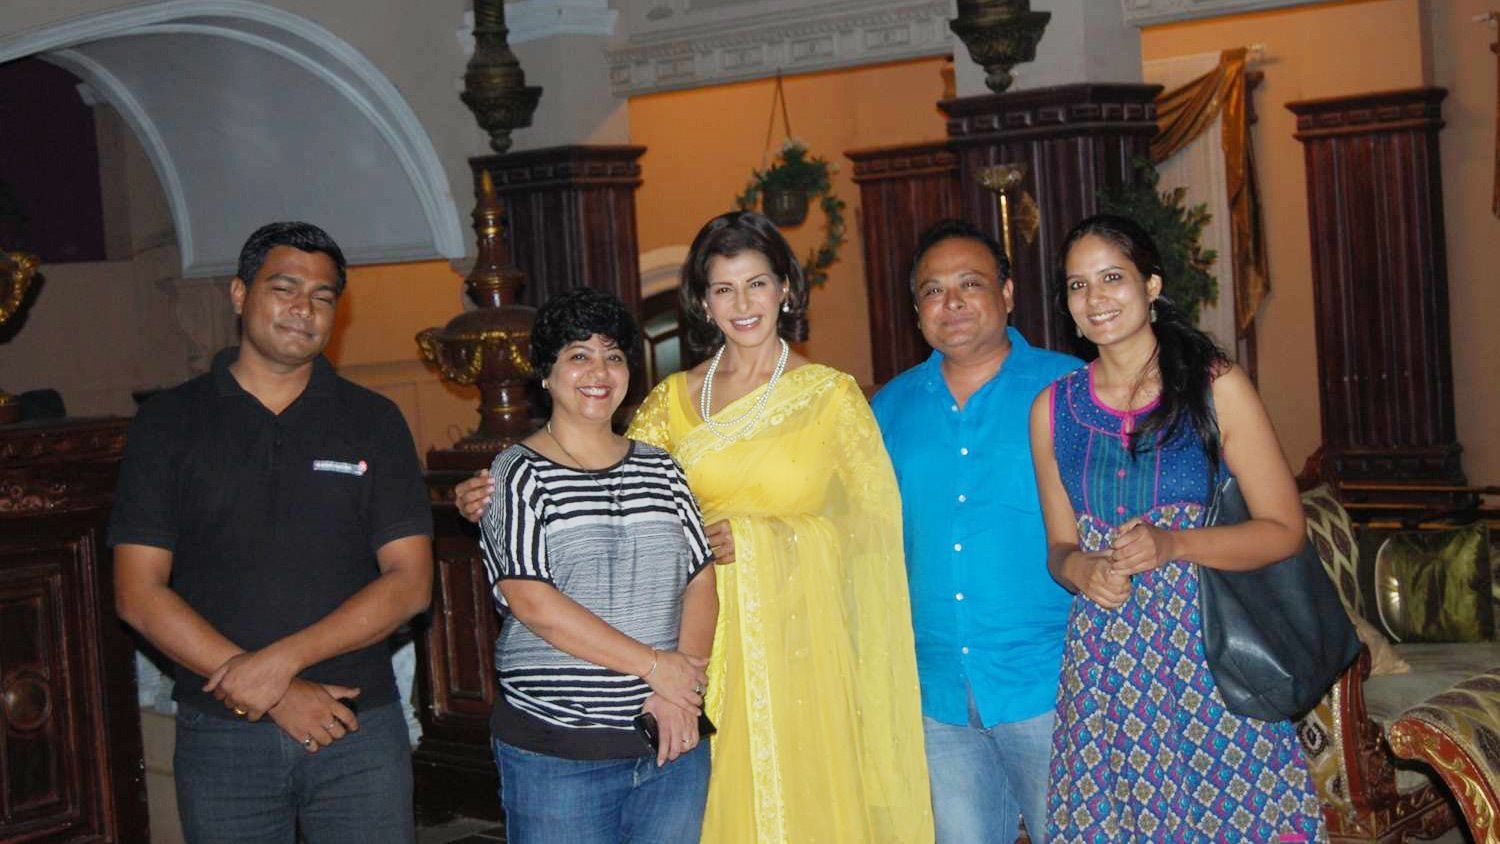 Tour group posing for a photo at a Bollywood studio in Mumbai